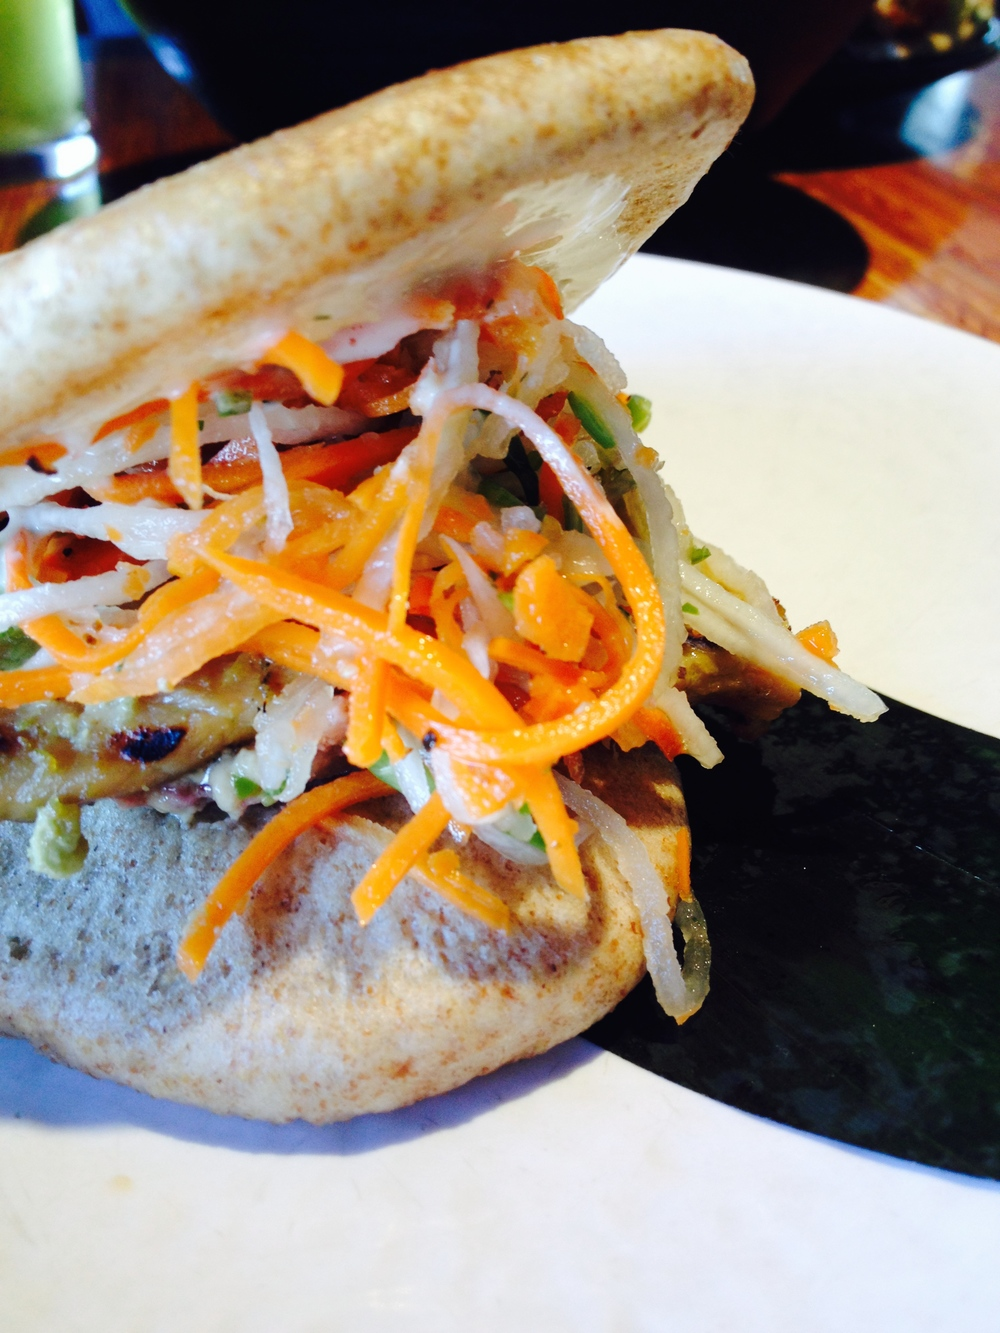 Grilled Pork Banh Mi - grilled pork loin, pate, housemade pickled vegetables, diced chilies, cilantro, and garlic aioli.